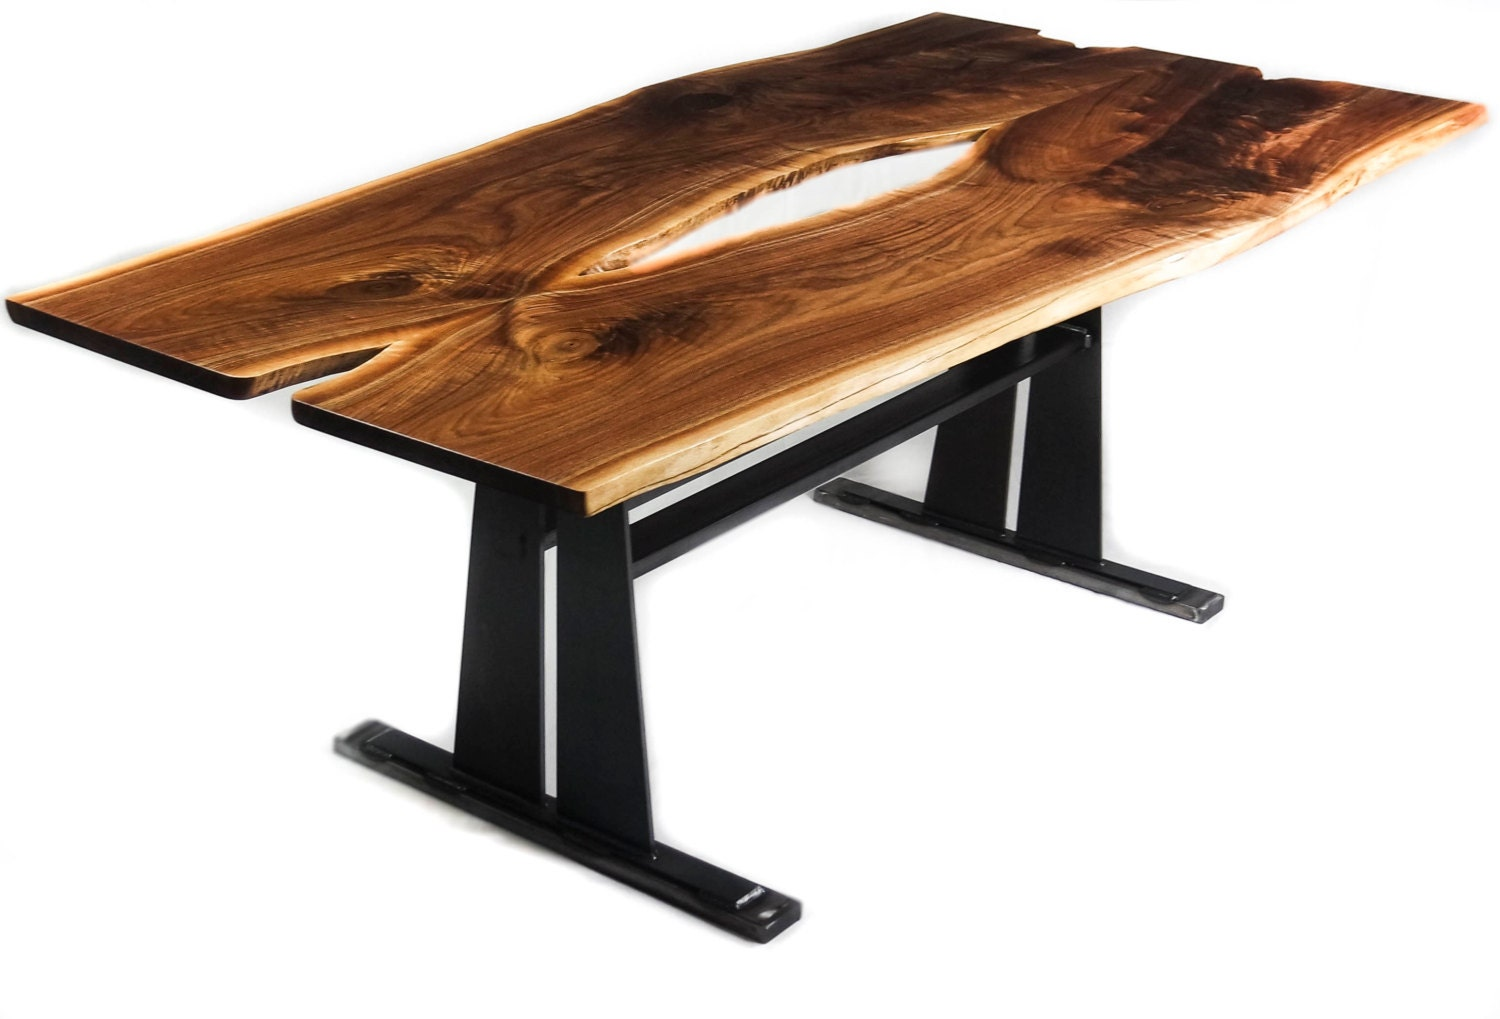 Bookmatched Walnut Live Edge Wood Slab Dining Table With : ilfullxfull959805254295w from www.etsy.com size 1500 x 1019 jpeg 156kB